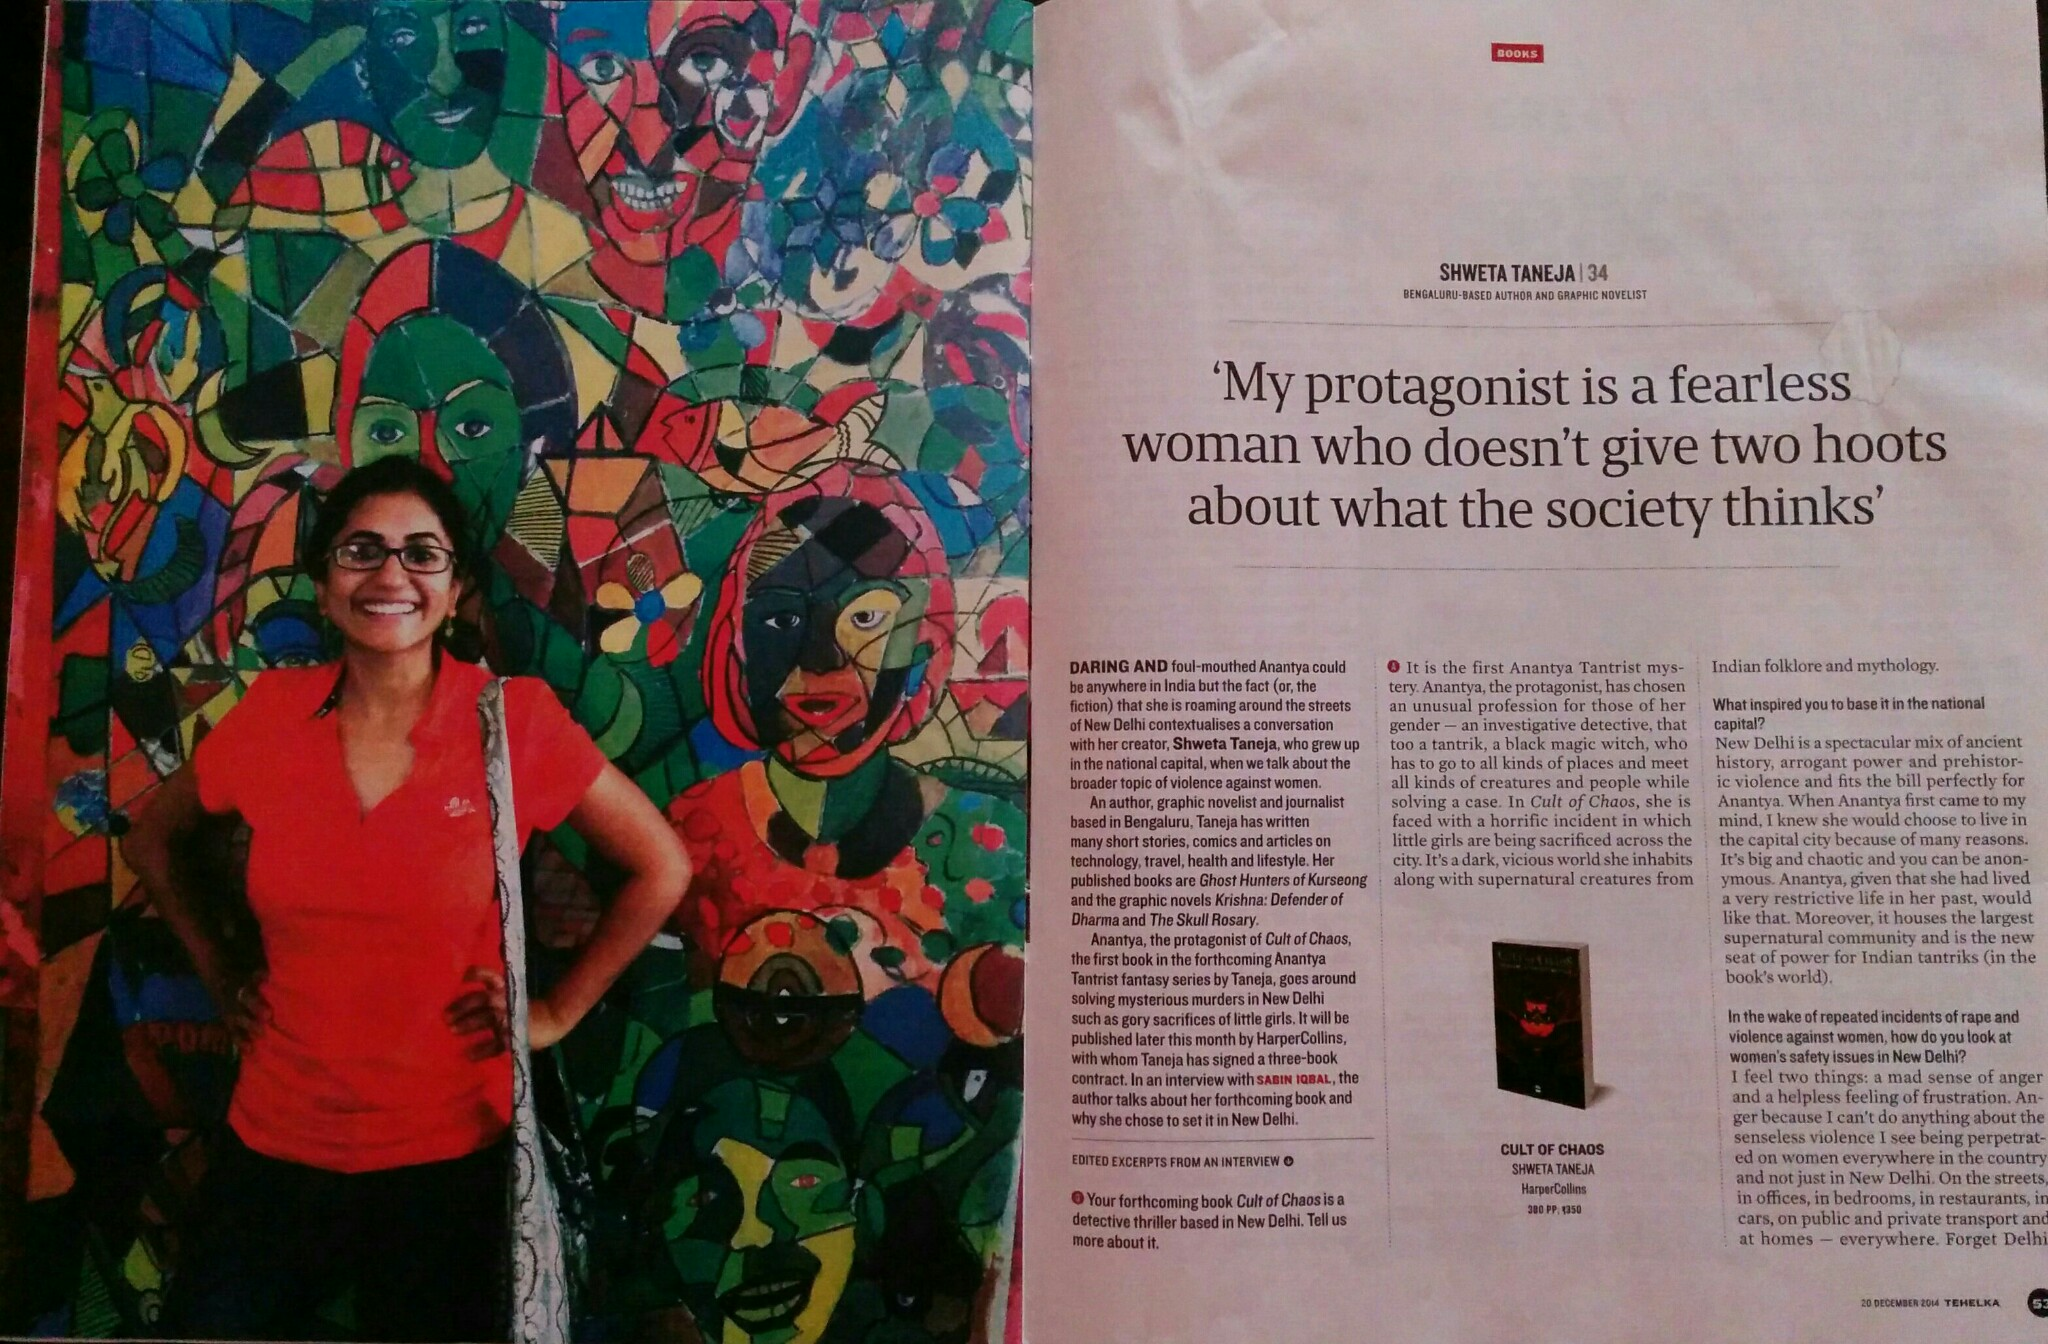 http://www.tehelka.com/my-protagonist-is-a-fearless-woman-who-doesnt-give-two-hoots-about-what-the-society-thinks/